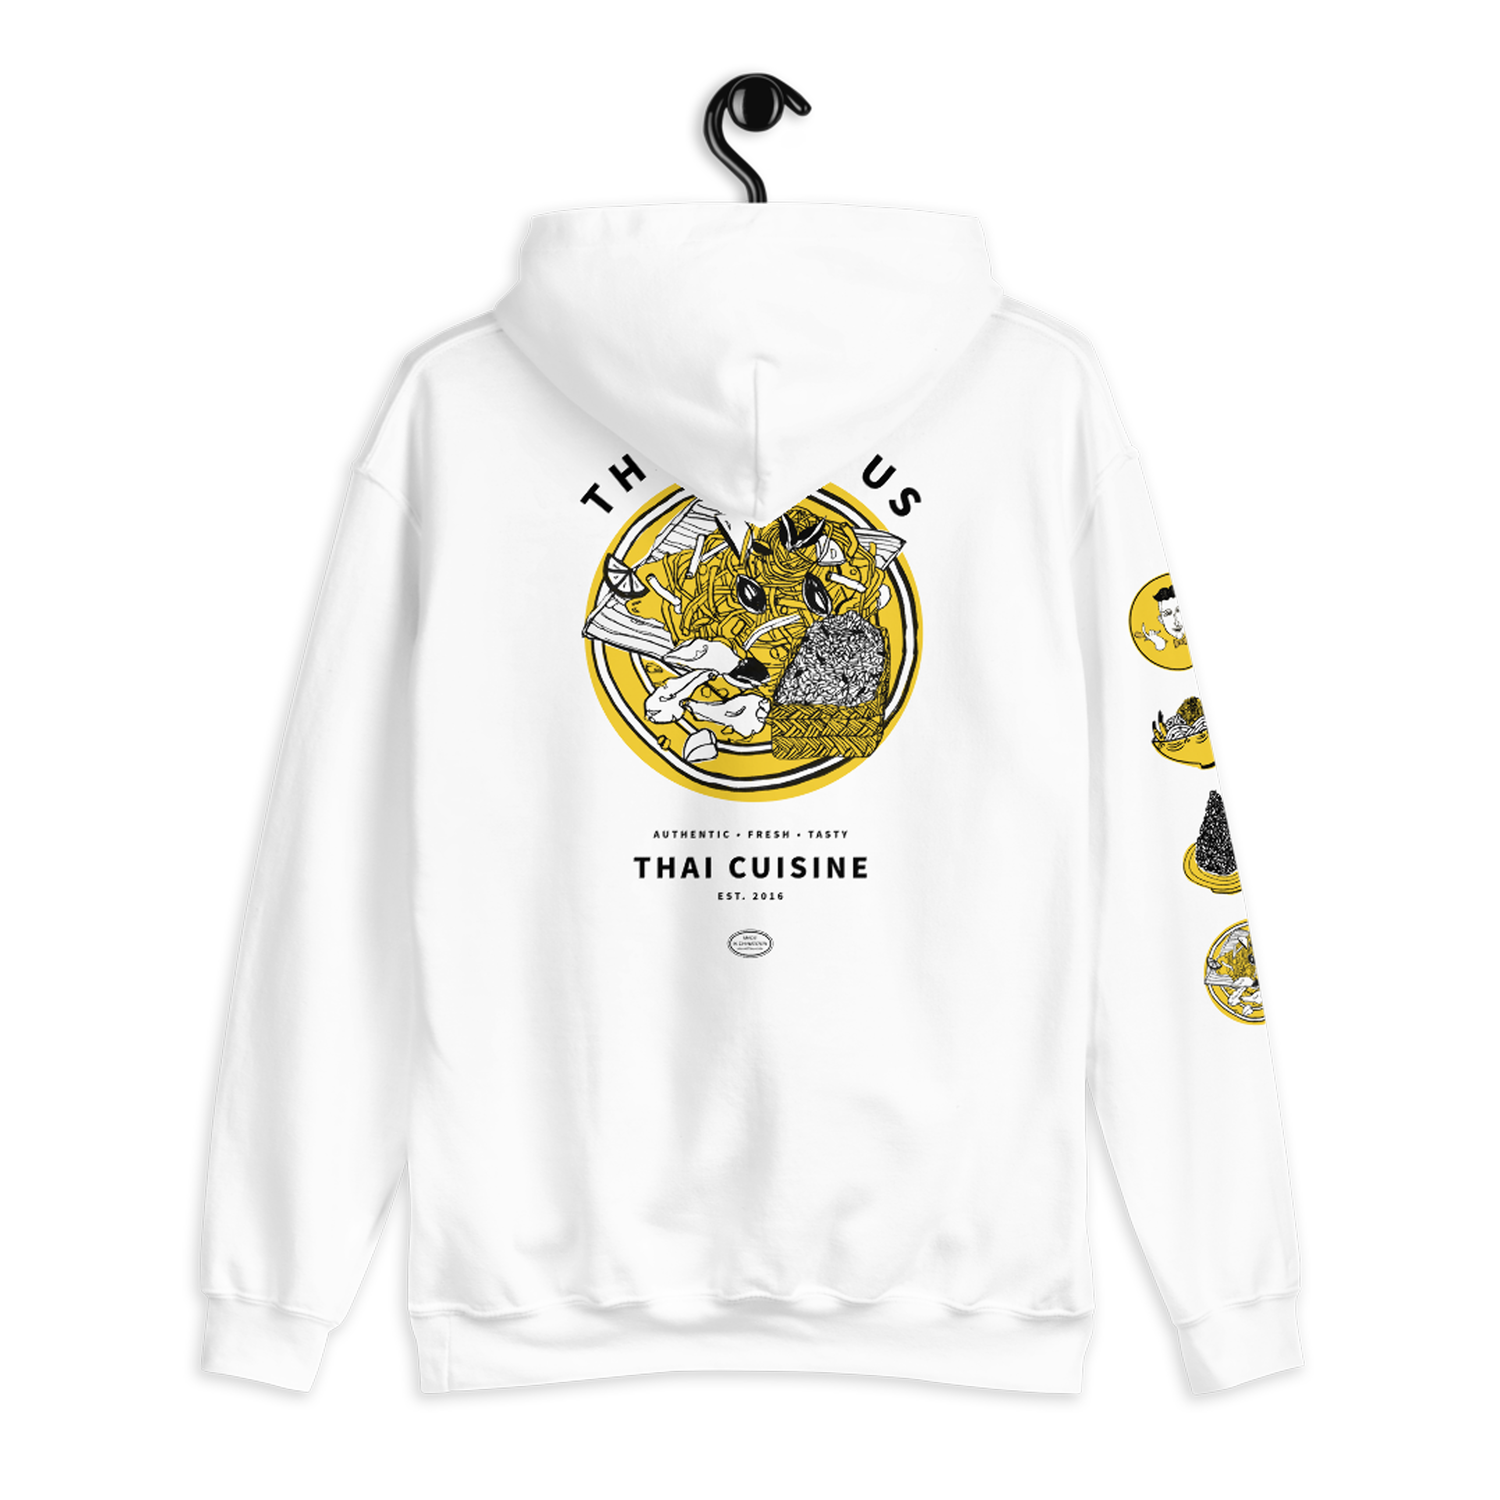 shopify-thailicious_product-image-Hoodie_02.png